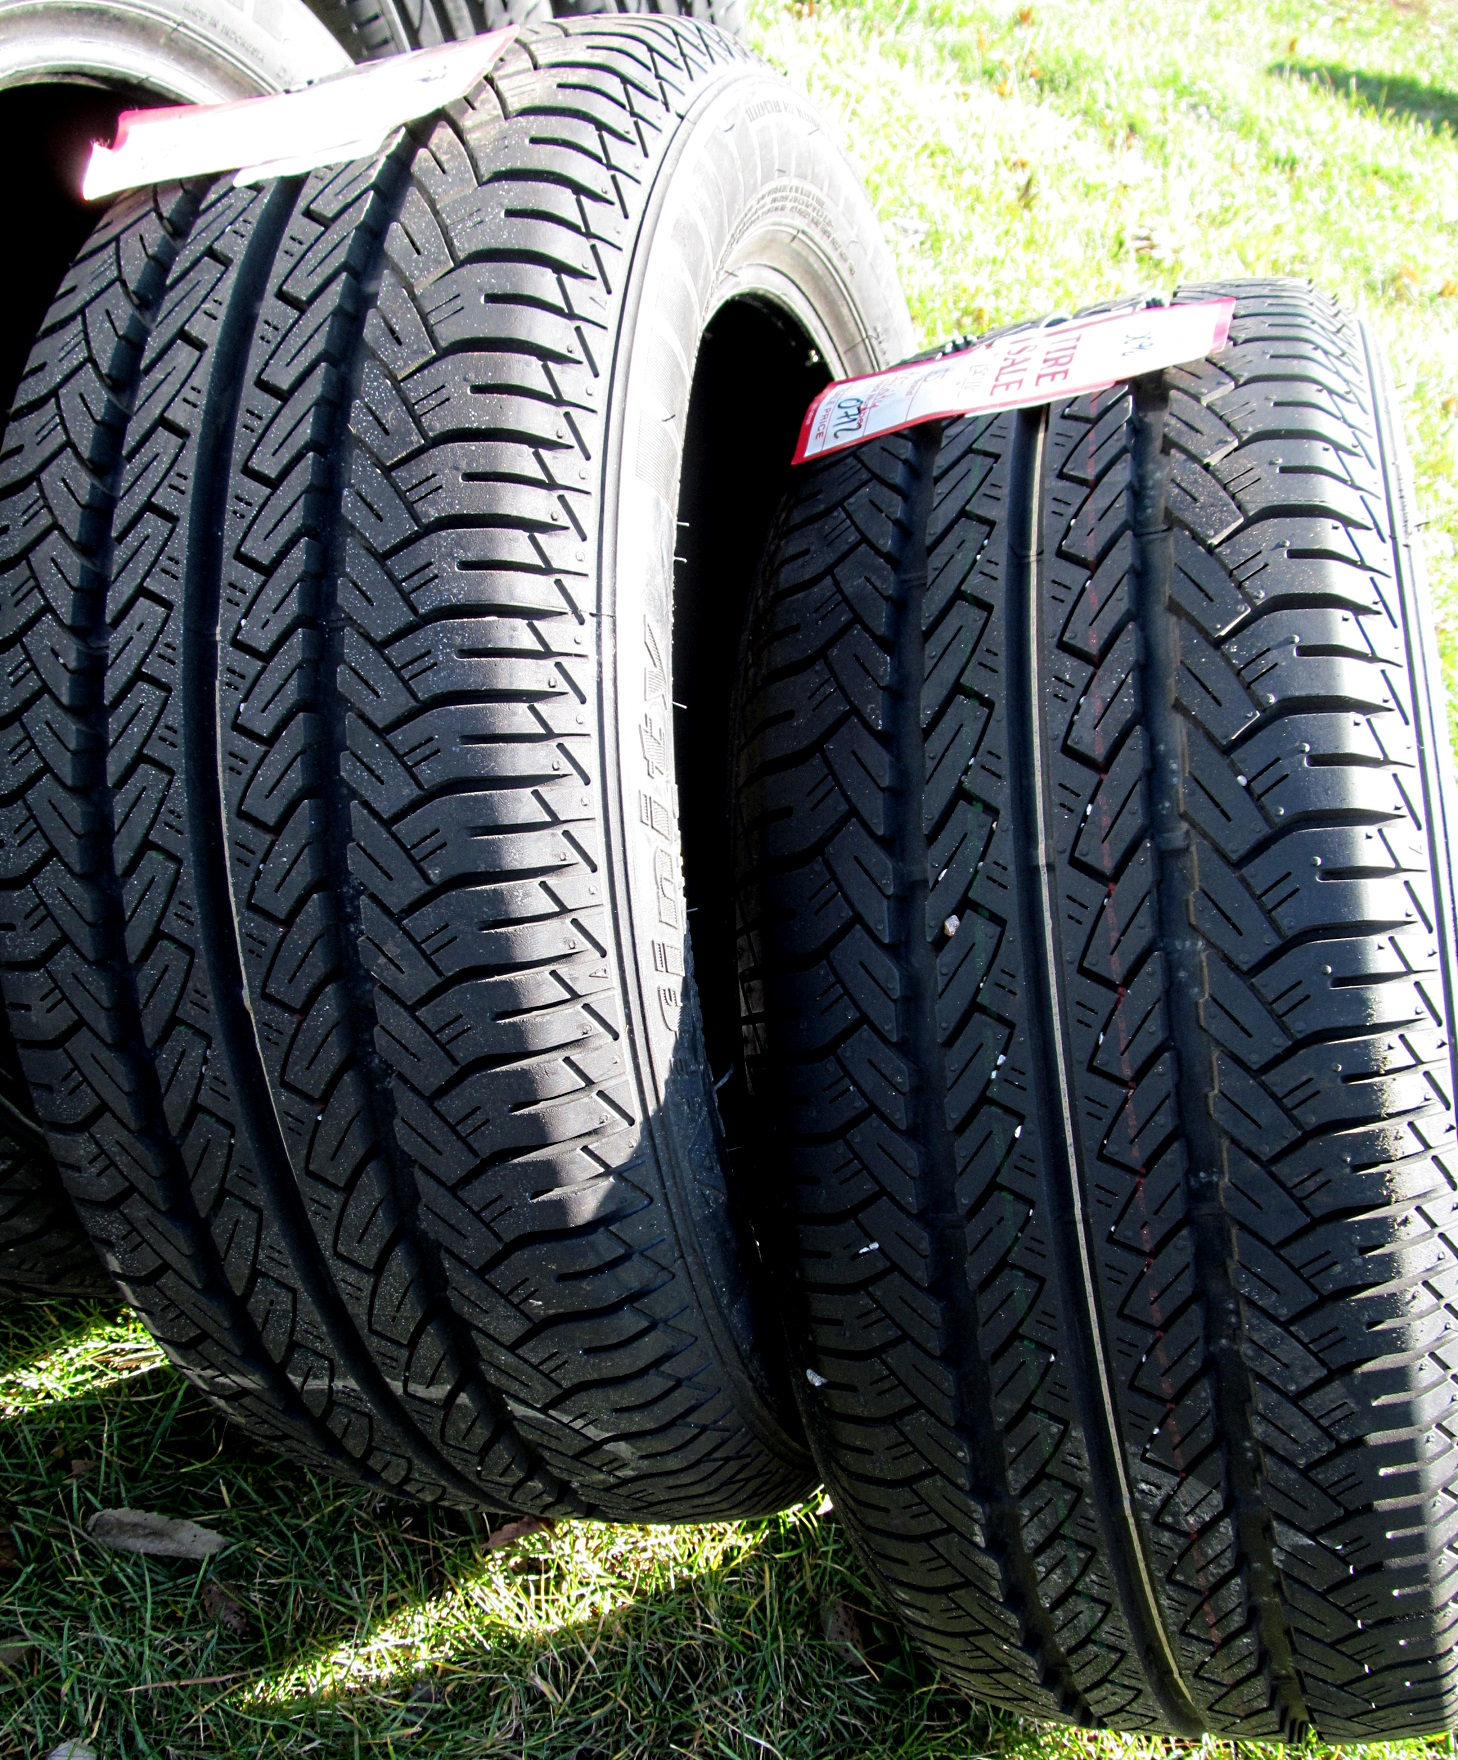 Firestone Affinity Touring S P R H Tire